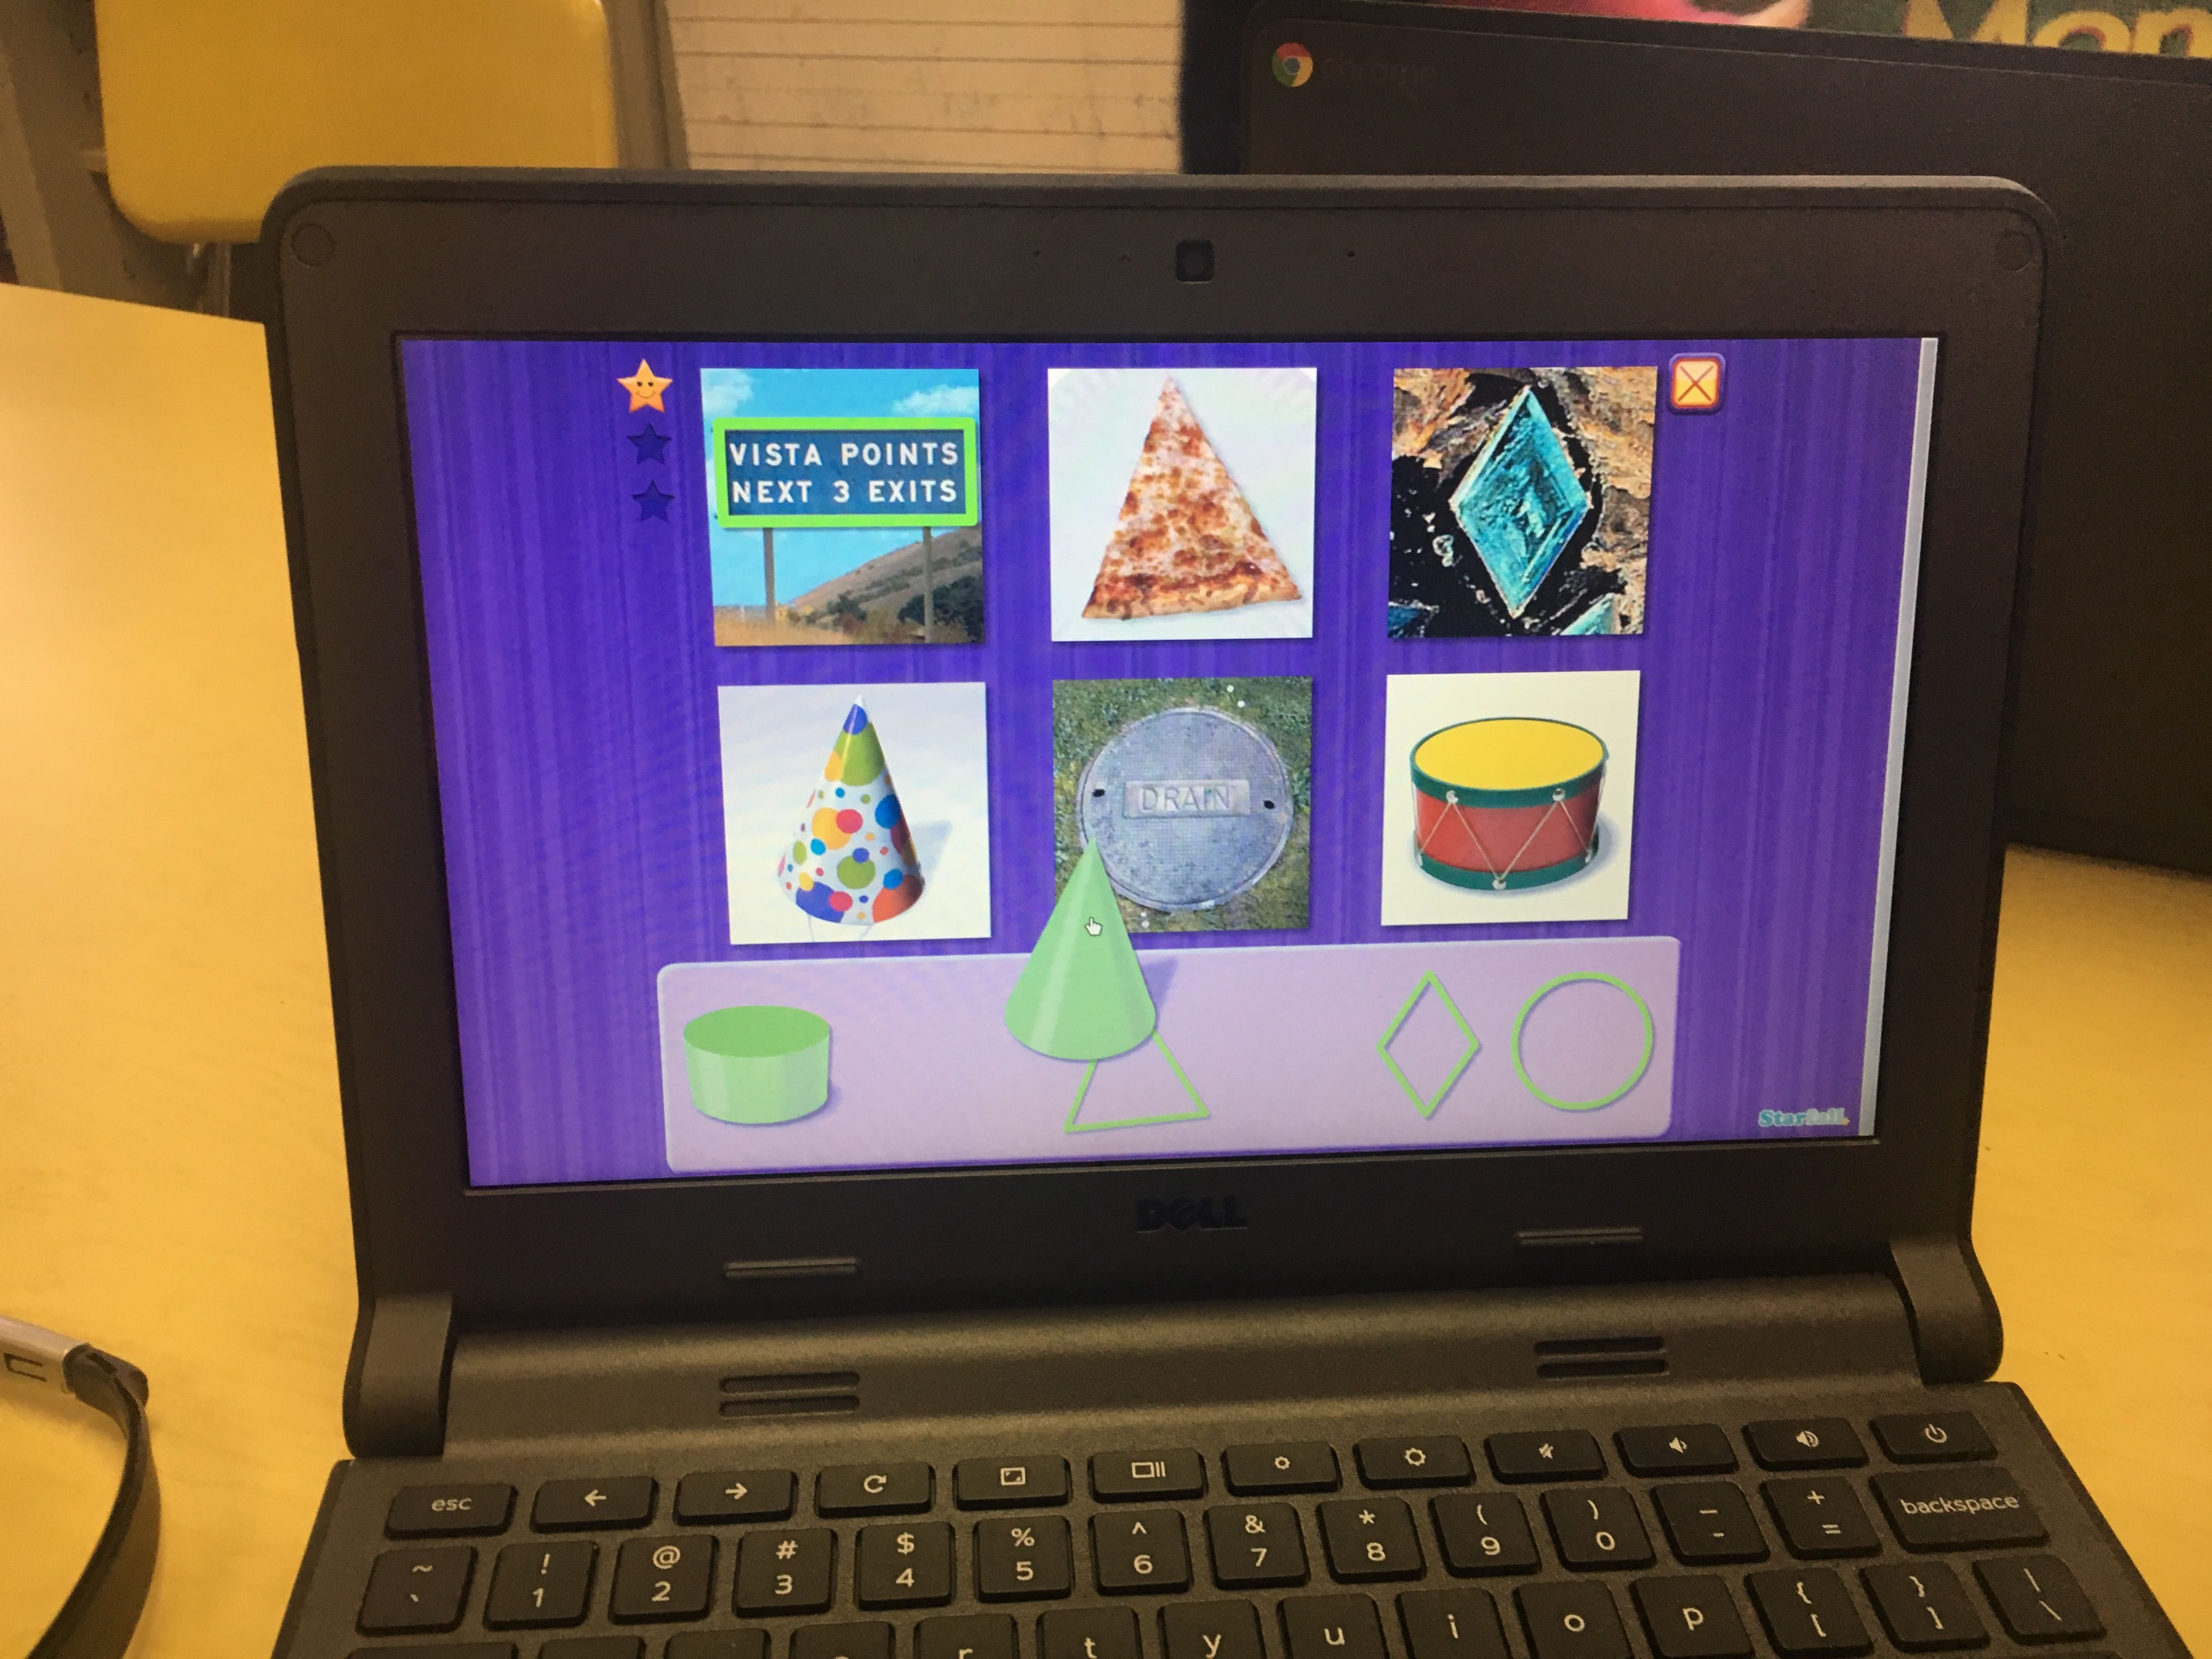 Uncategorized Starfall Math Worksheets starfallonline activity applying shape knowledge to real life objects text world connections